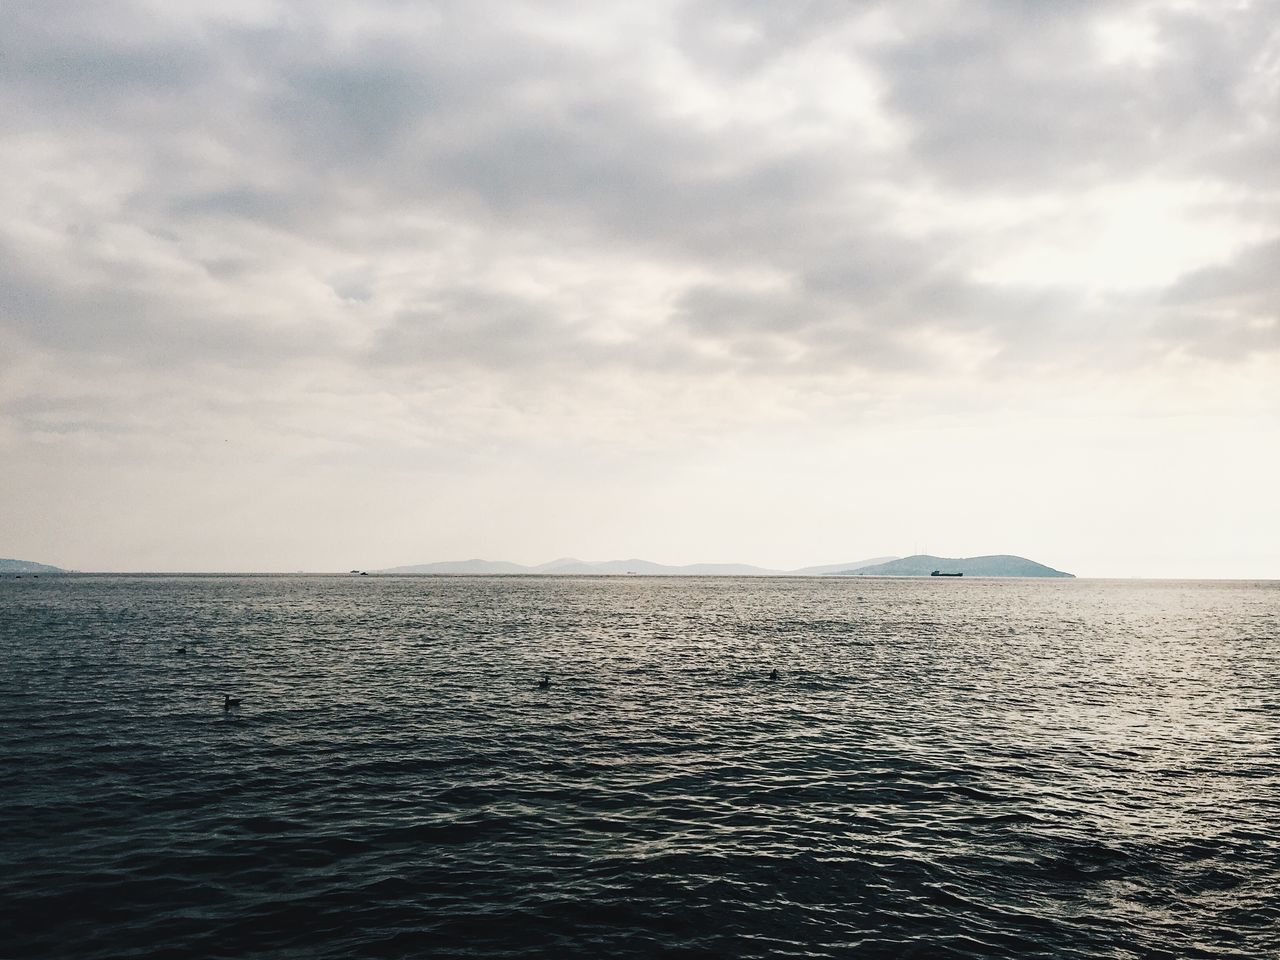 sea, tranquility, water, beauty in nature, scenics, nature, tranquil scene, rippled, waterfront, no people, sky, outdoors, cloud - sky, day, horizon over water